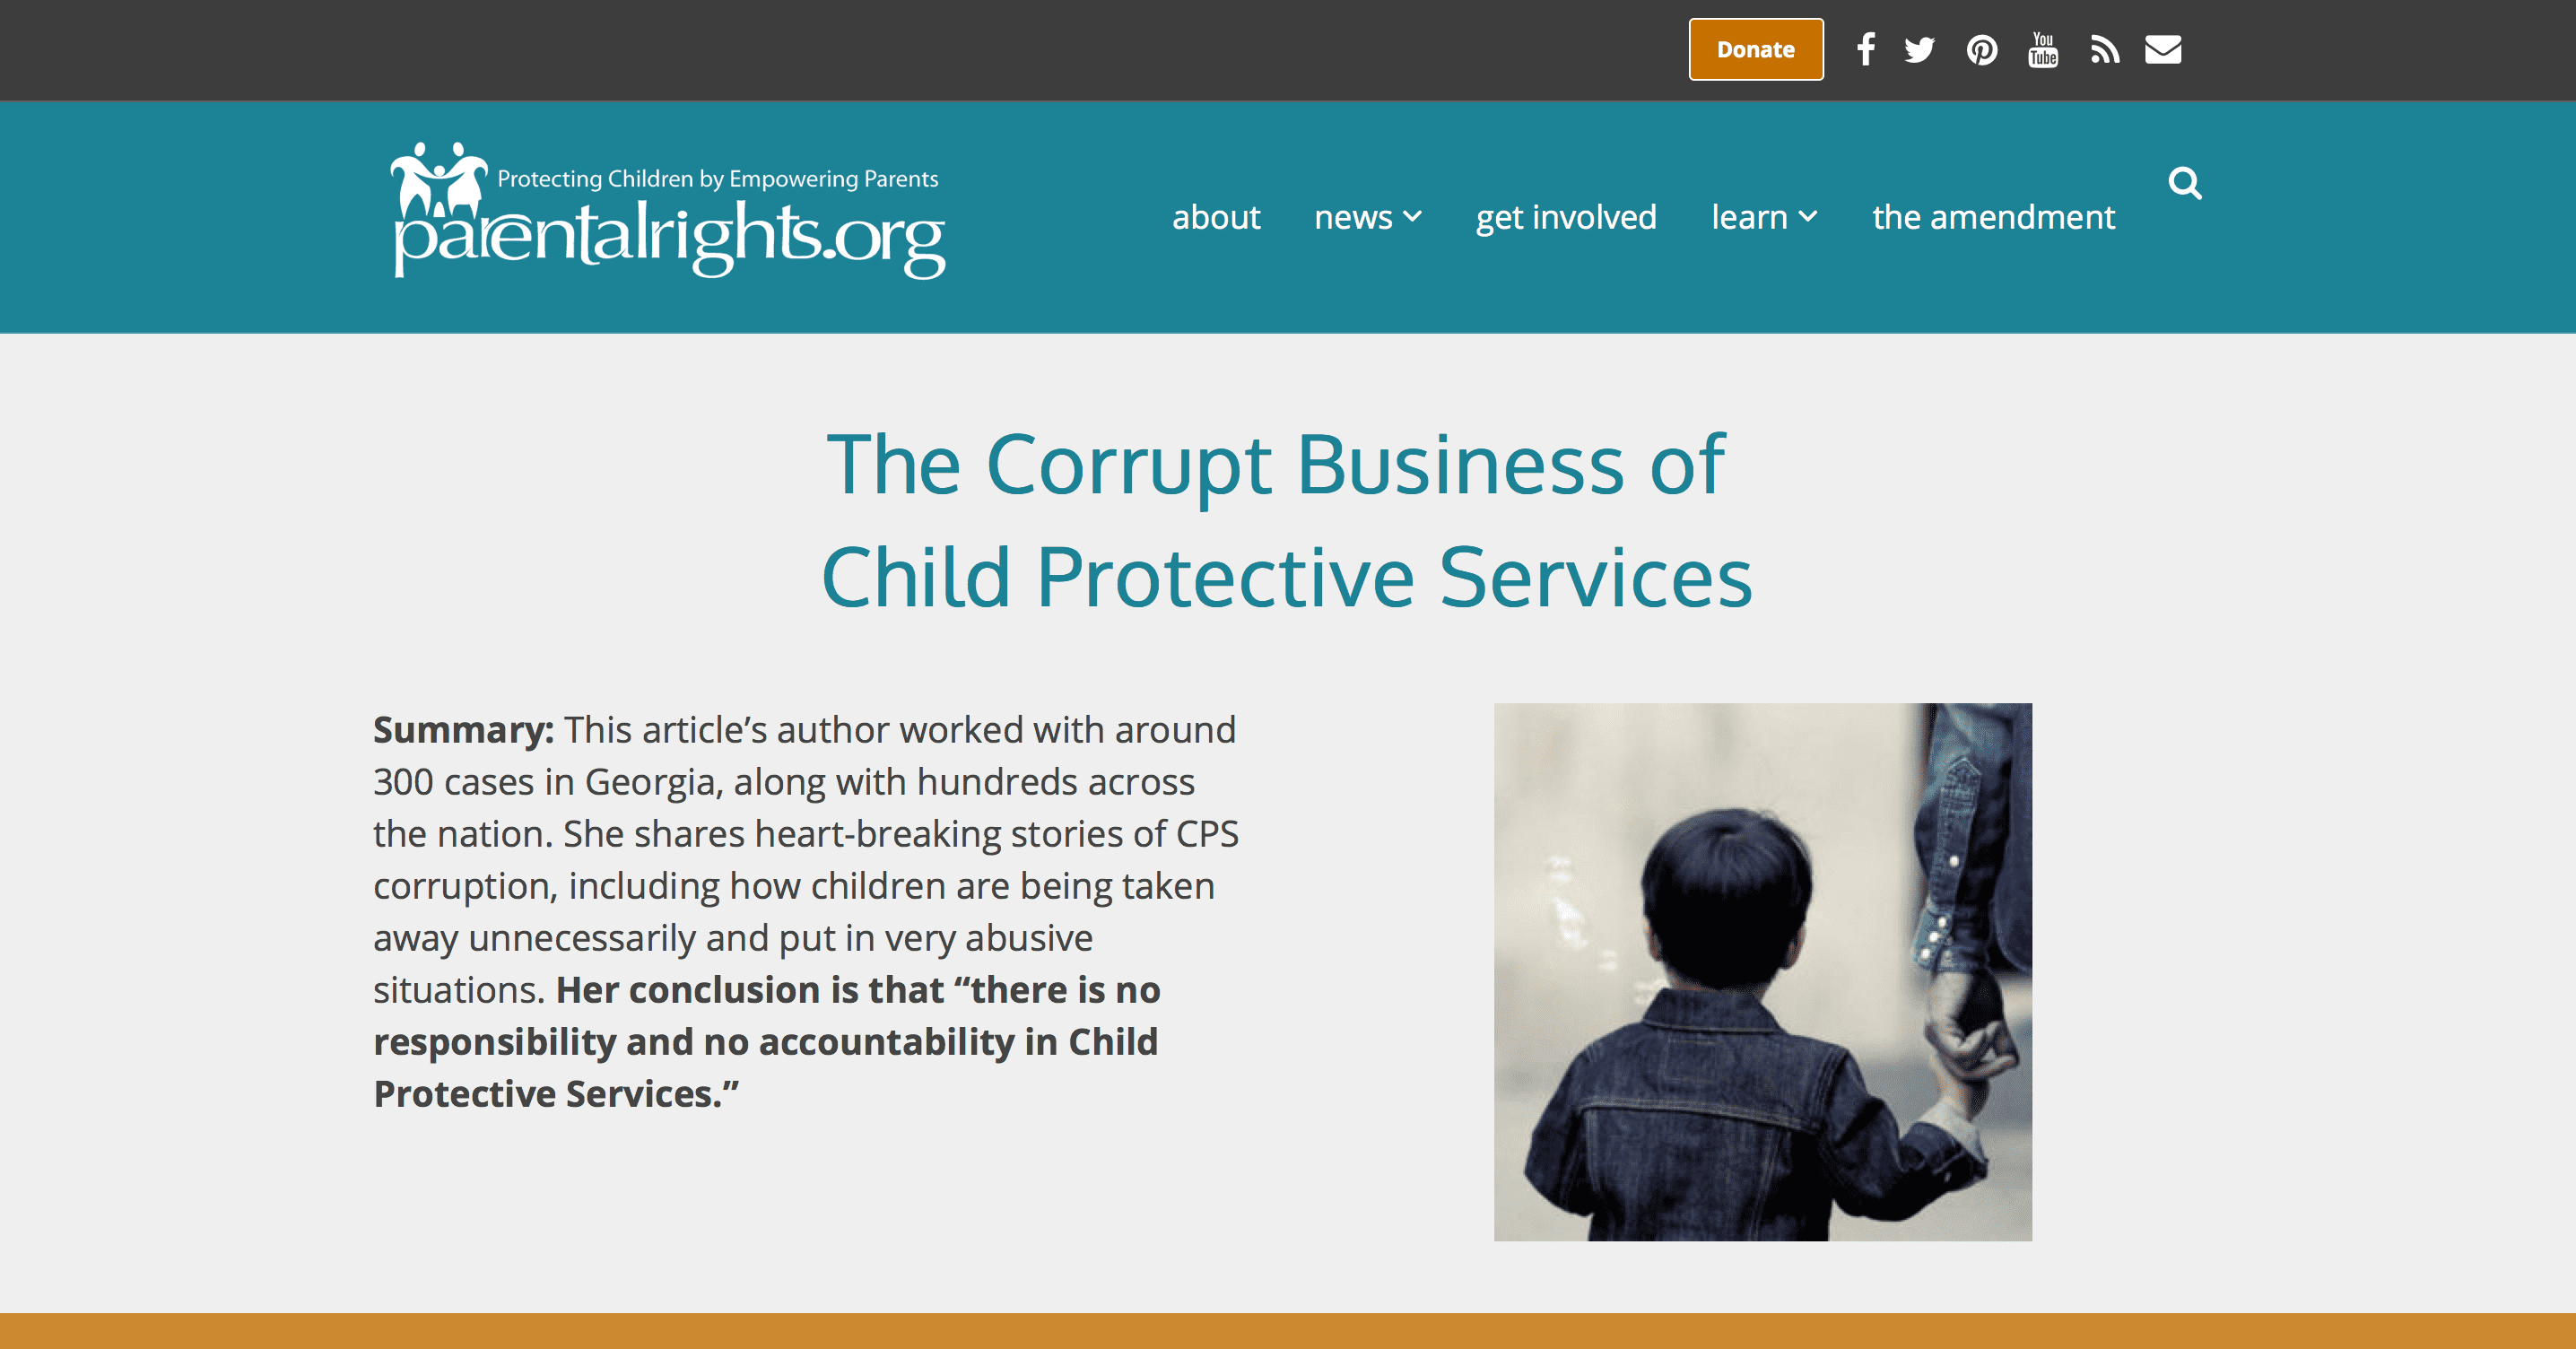 Child sex trafficking through child protective services exposed